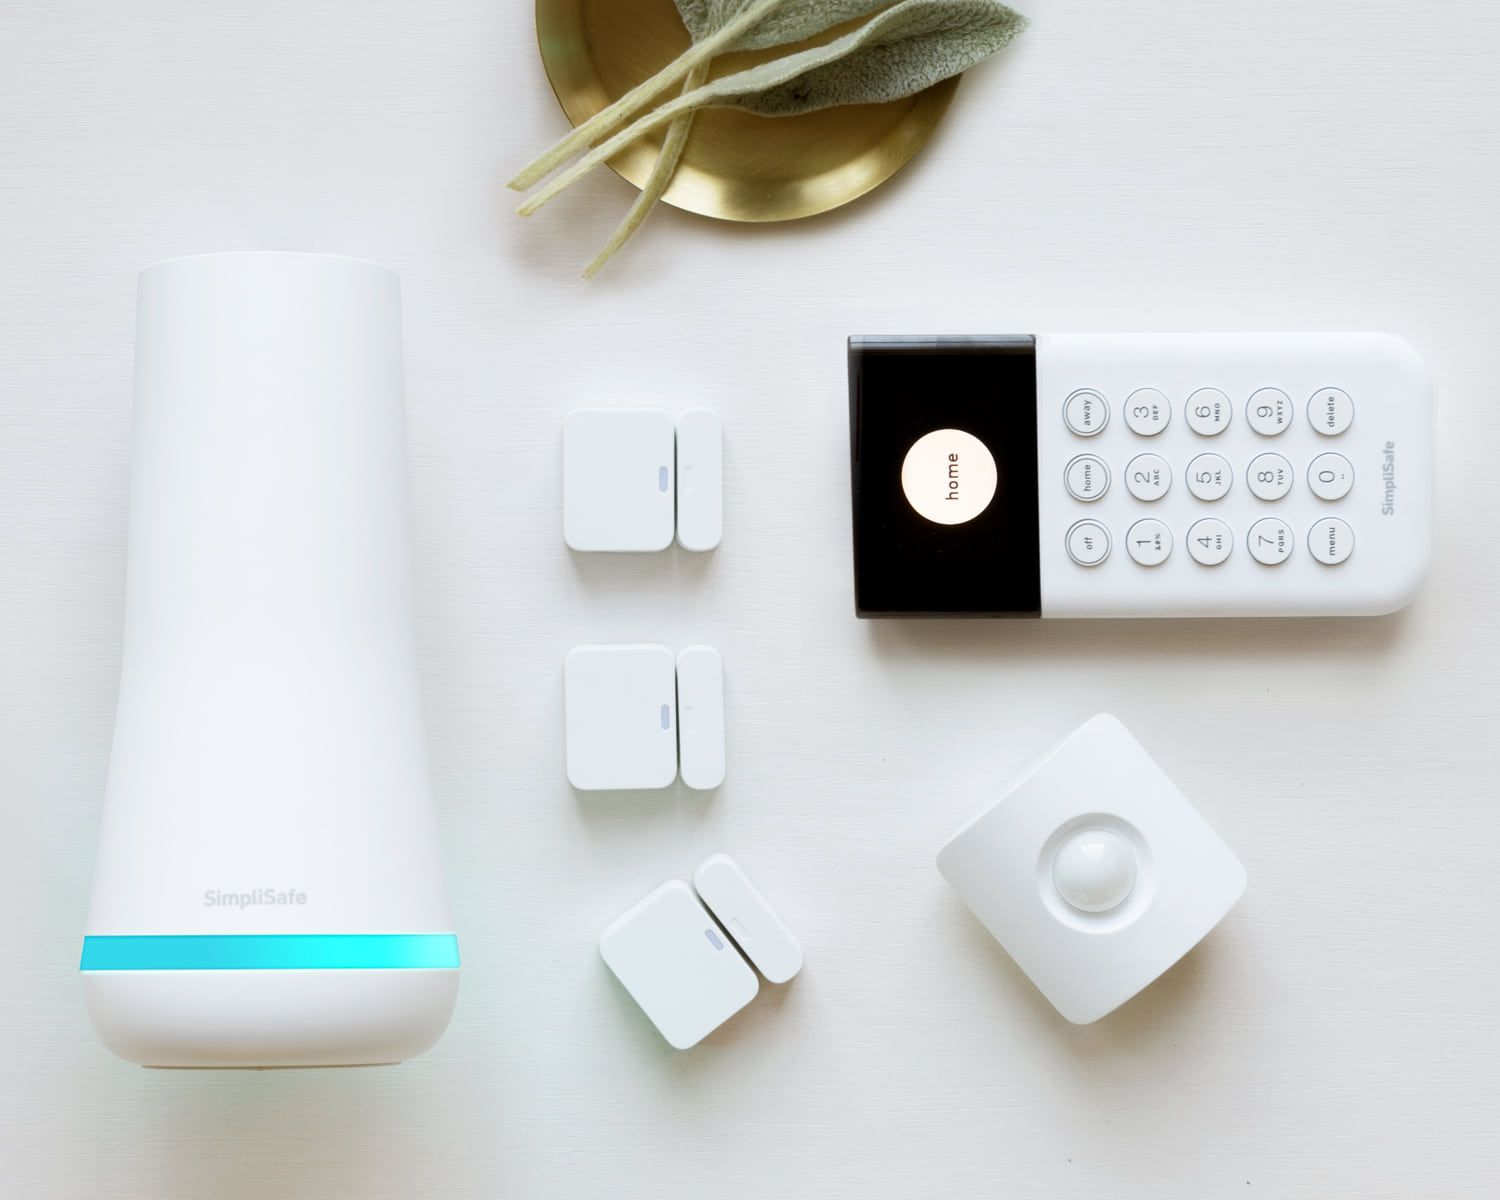 8 Of The Best Home Security Systems According To People Who Use Them Wireless Home Security Simplisafe Home Security Systems